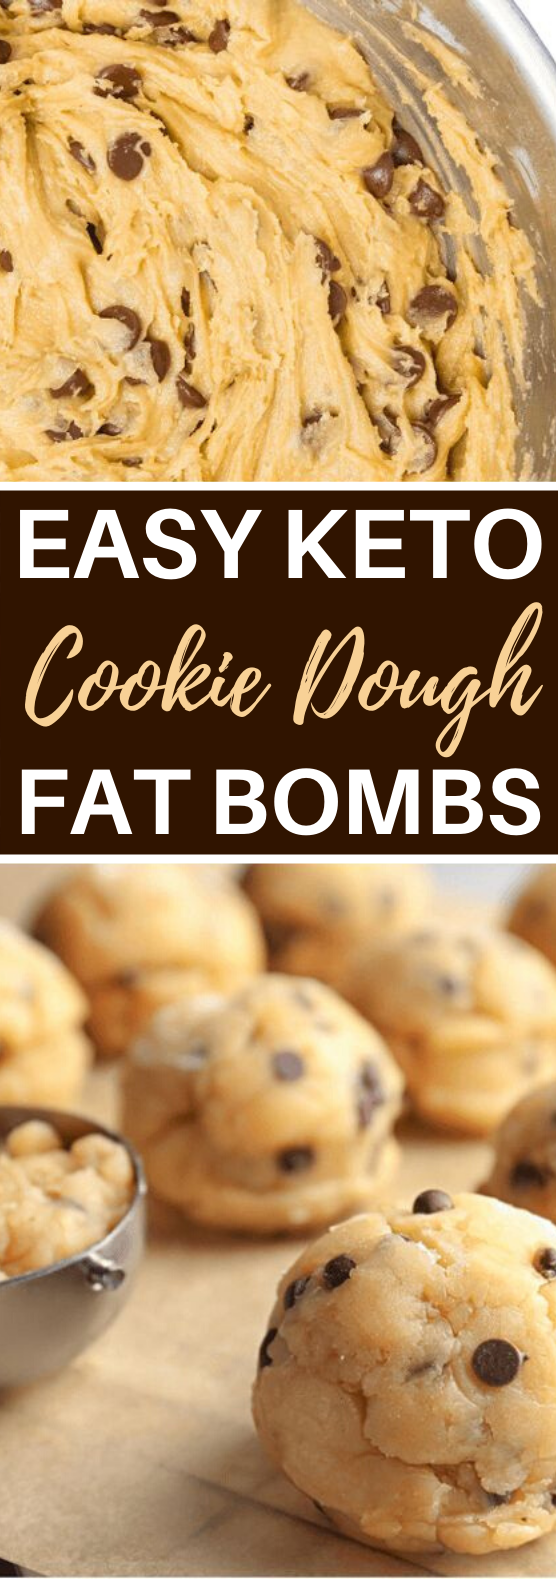 Keto Chocolate Chip Cookie Dough Fat Bombs #healthy #snacks #keto #diet #cookies